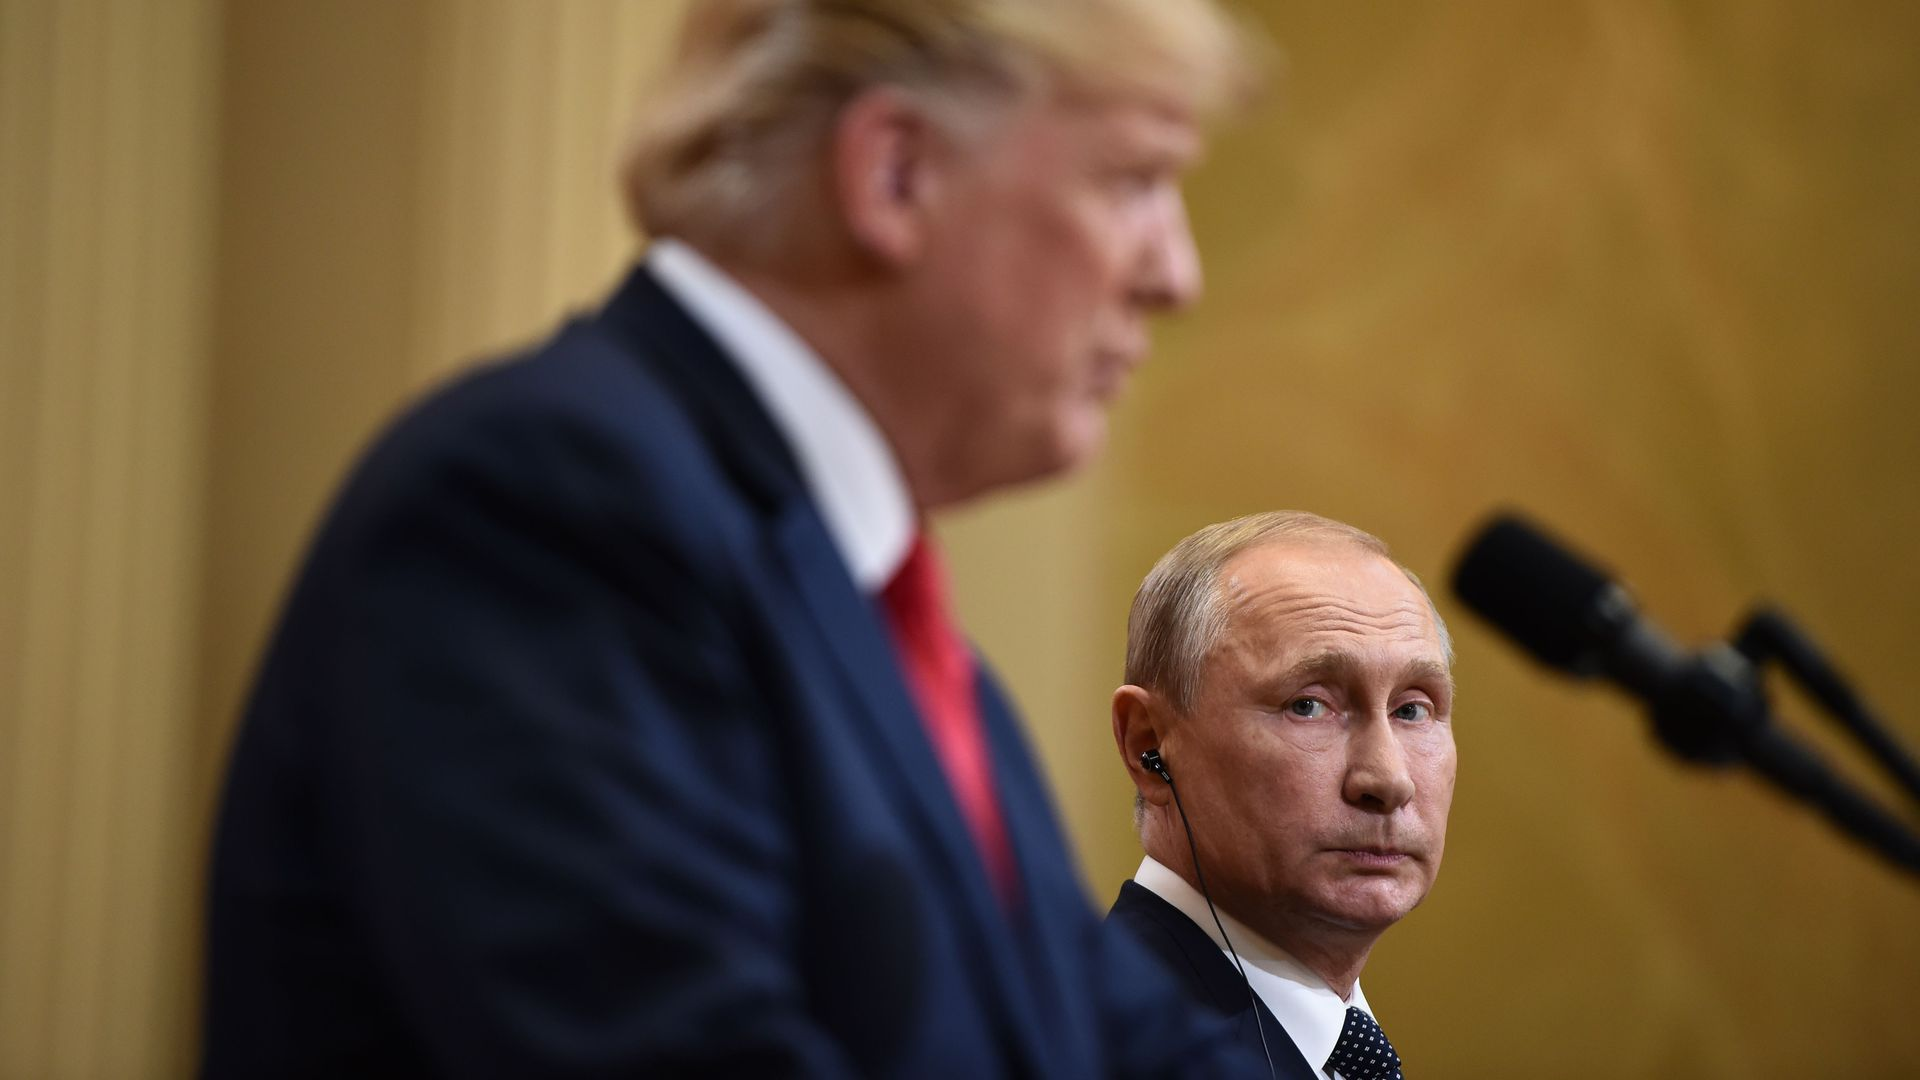 Vladimir Putin in background in focus looks concernedly at Trump, in foreground, blurry.